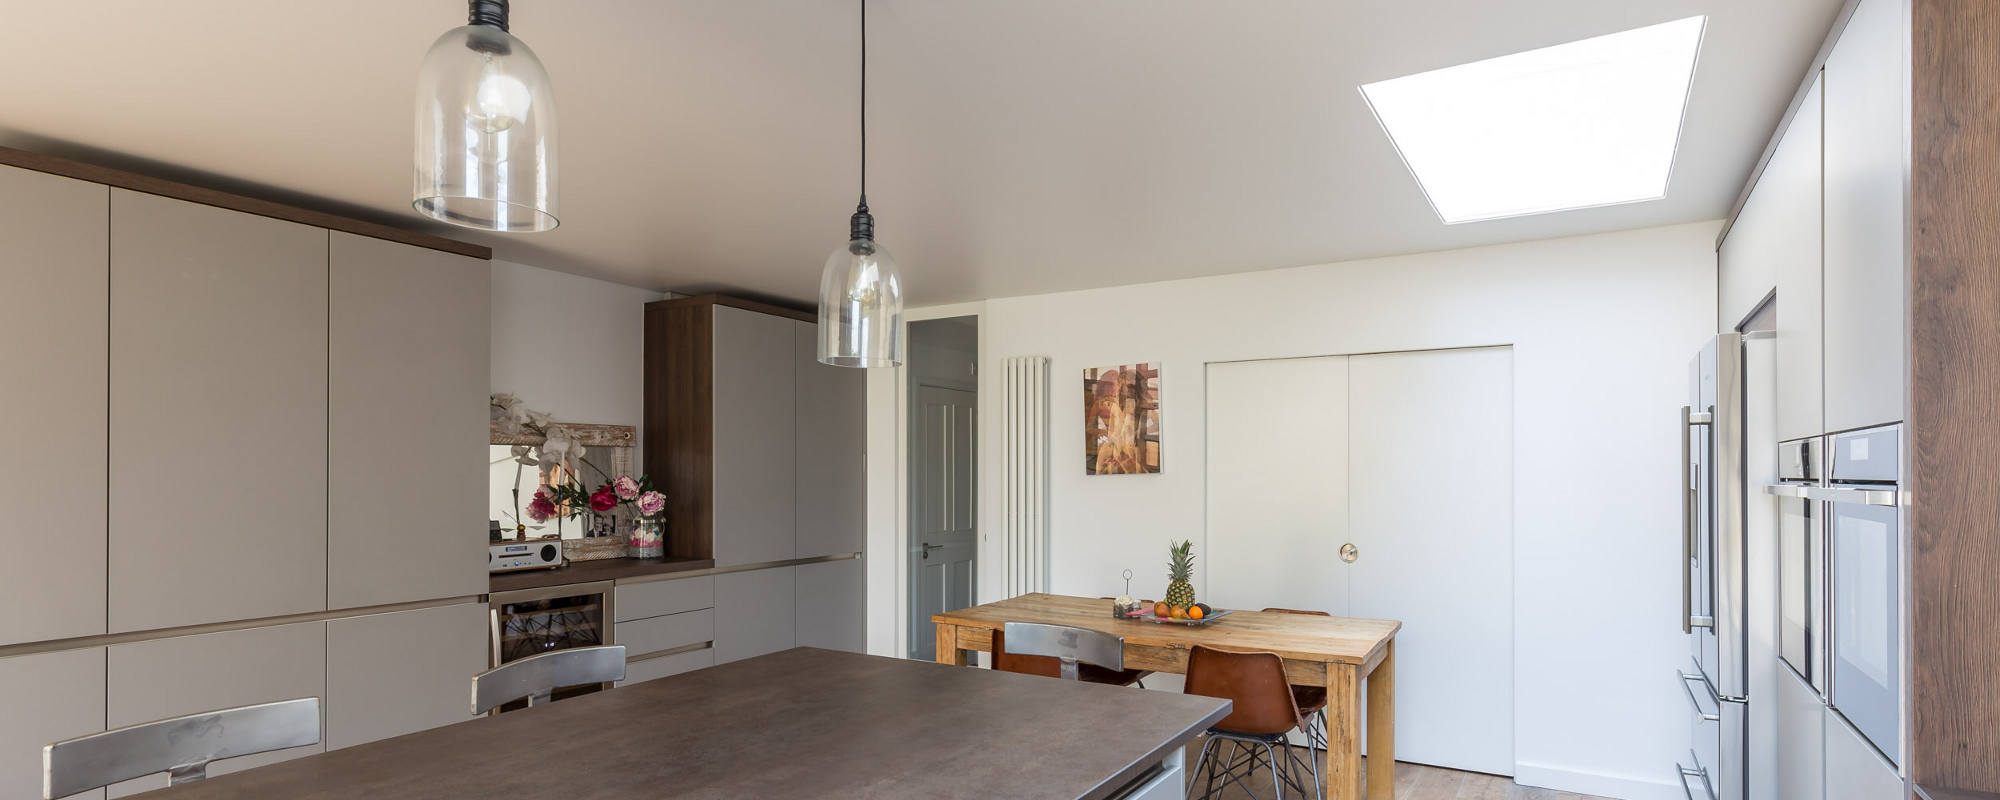 House Extension, Hove, East Sussex